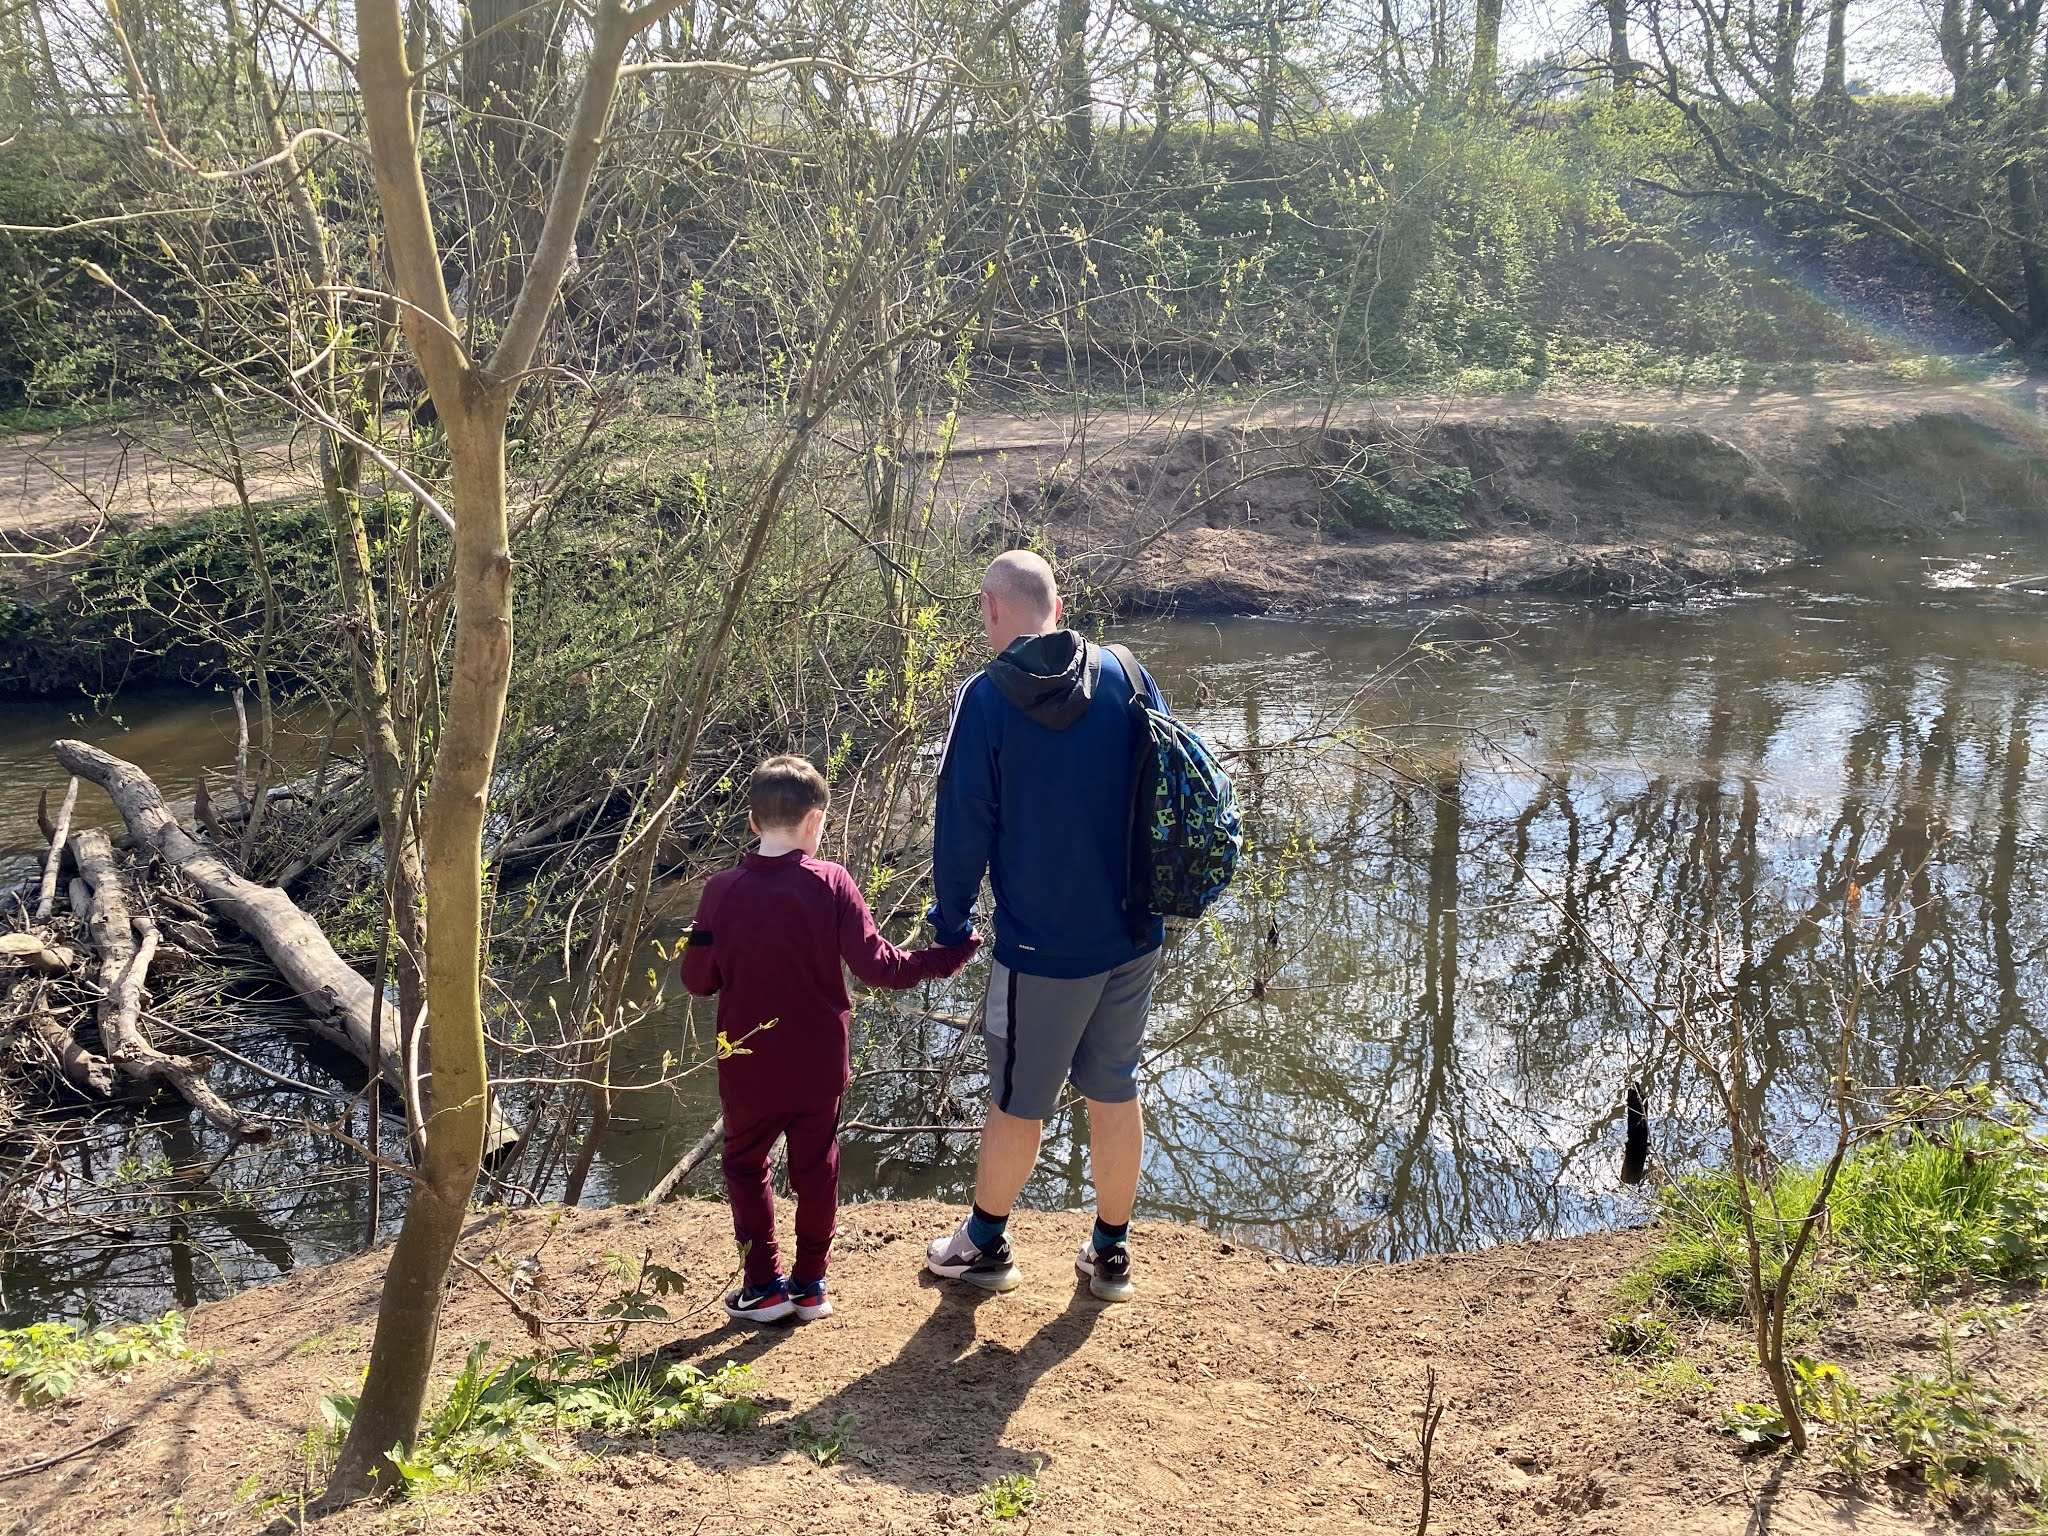 dad and son looking in the river